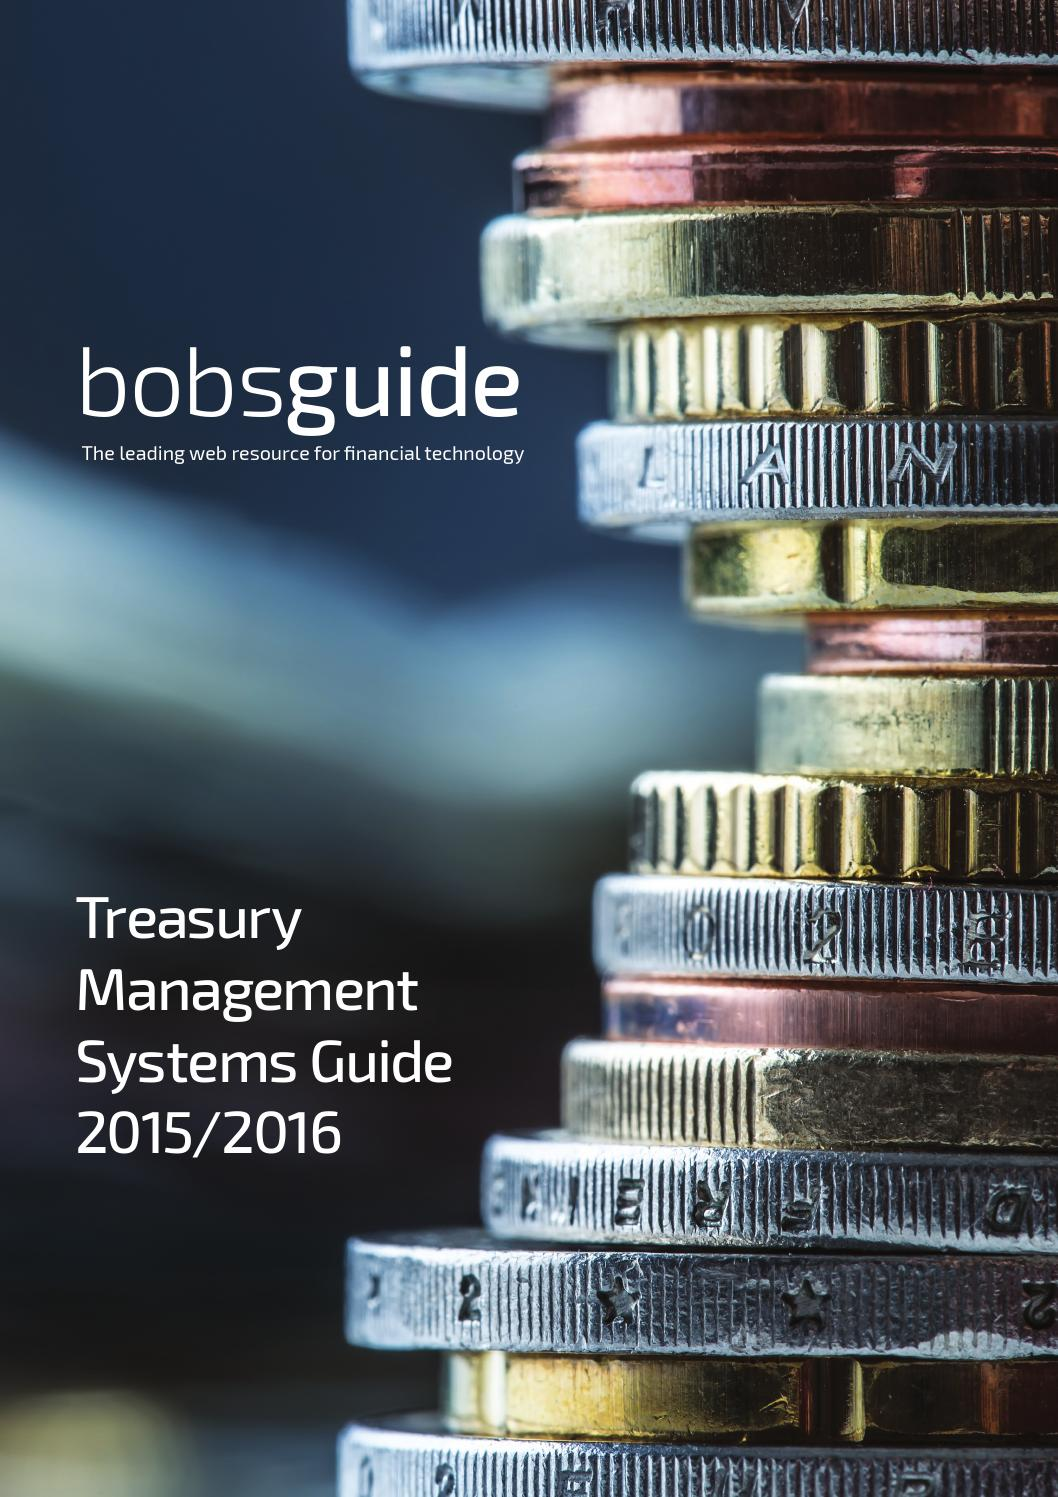 Treasury Management Systems Guide 2015 2016 By Bobsguide